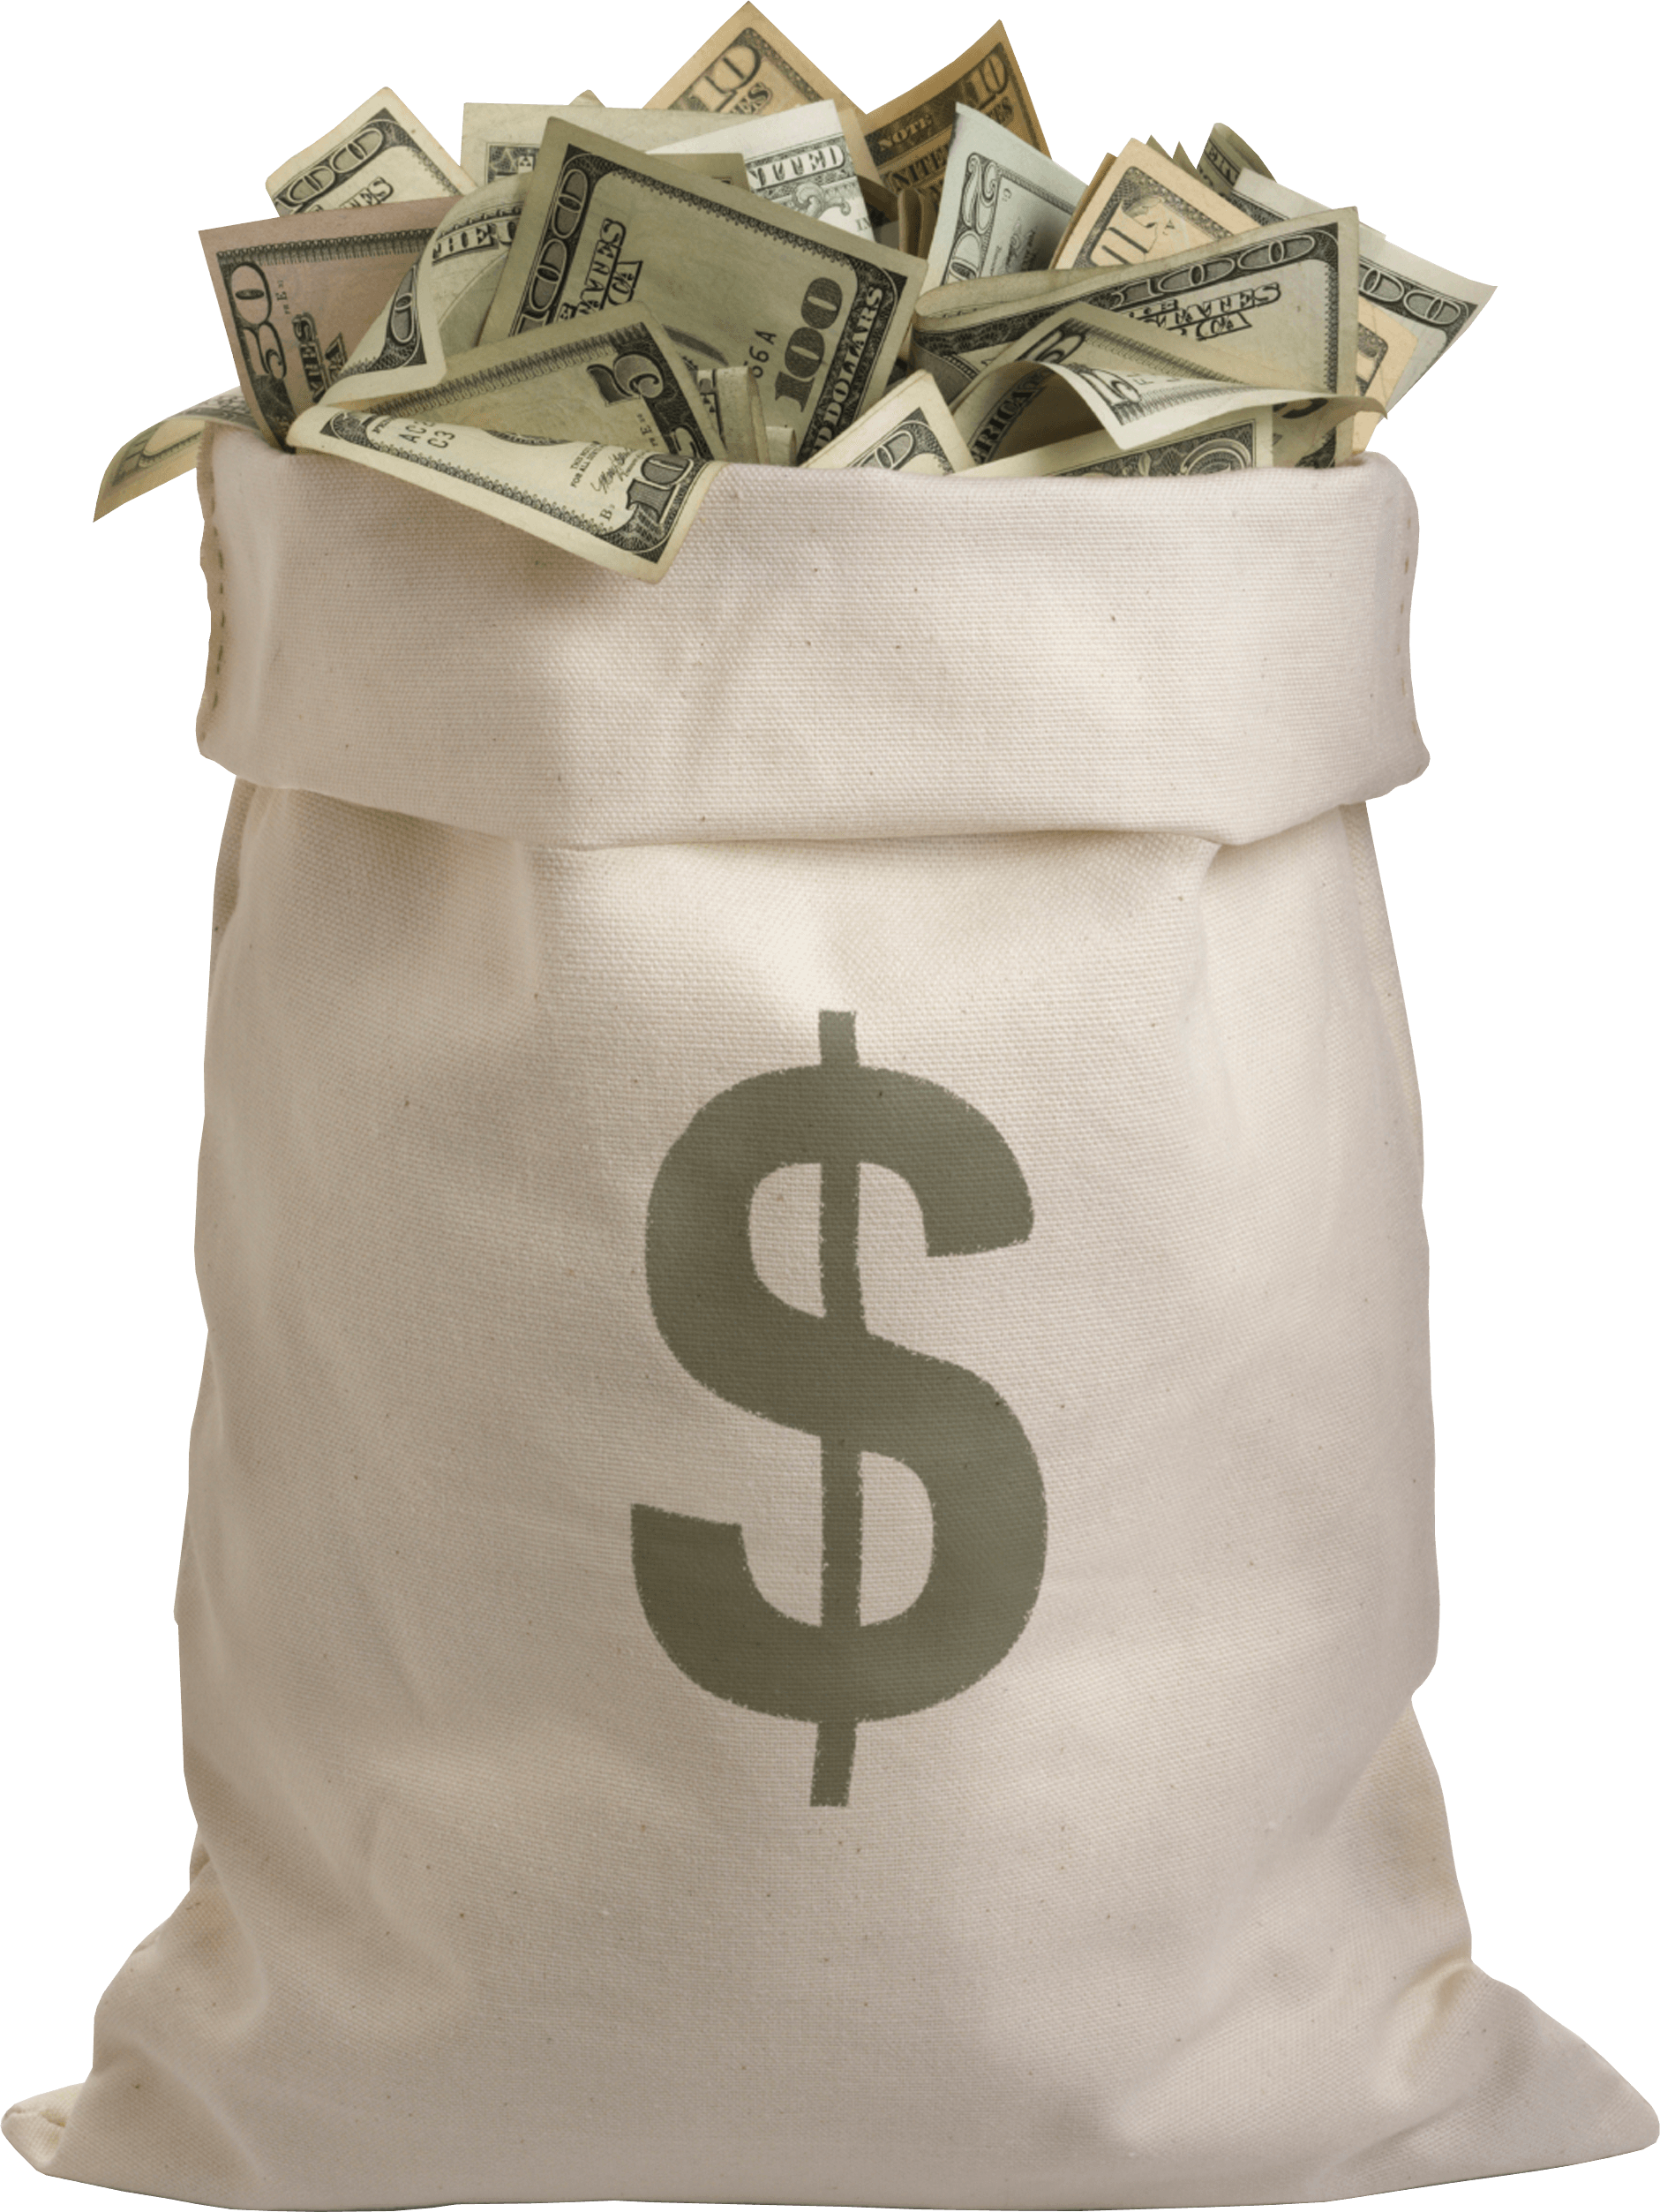 Cash money bag free clipart picture stock Money transparent PNG images - StickPNG picture stock